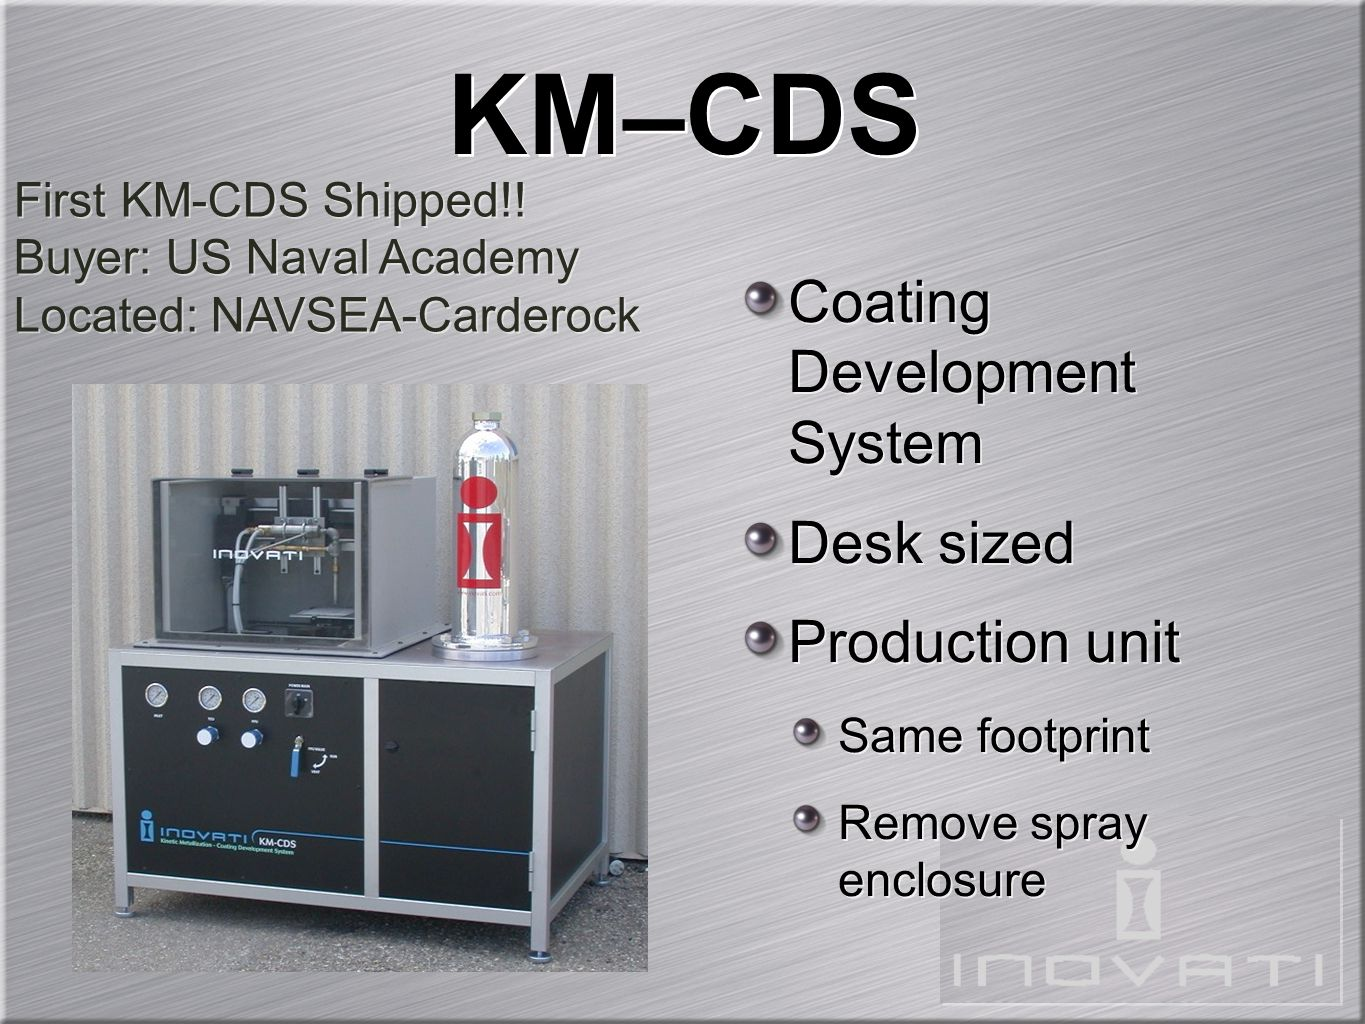 Coating Development System Desk sized Production unit Same footprint Remove spray enclosure Coating Development System Desk sized Production unit Same footprint Remove spray enclosure KM–CDS First KM-CDS Shipped!.